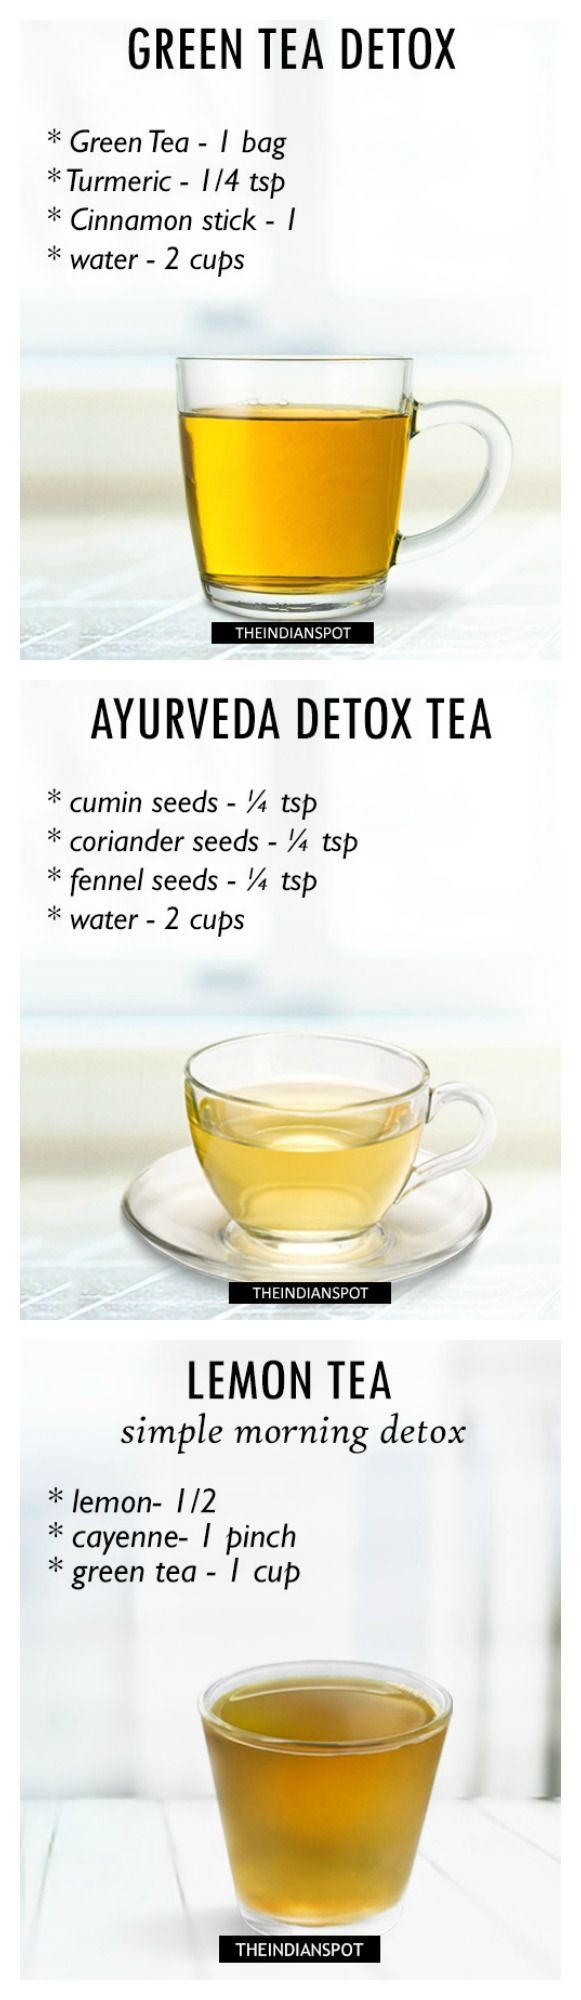 Morning Detox Tea Recipes For Healthy Body And Glowing